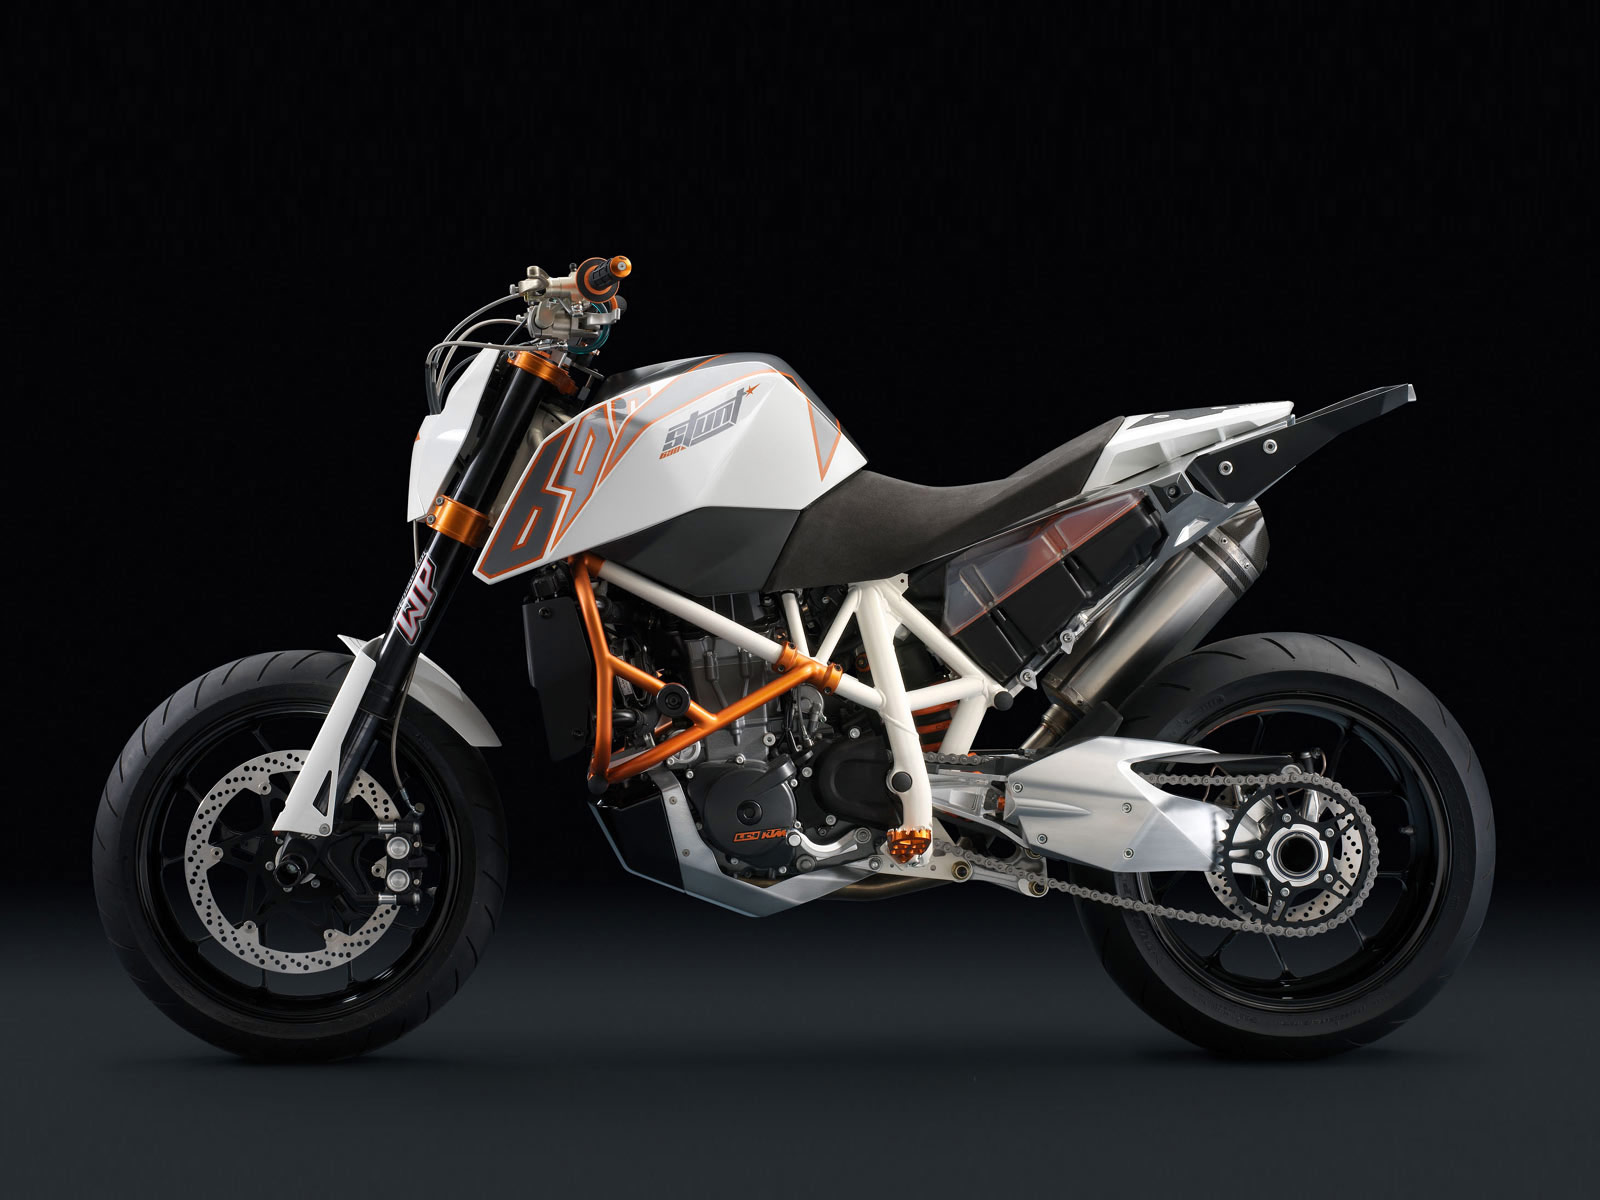 Ktm 690 smc r wallpapers for desktop - Http 4 Bp Blogspot Com Nsw Dblfkha